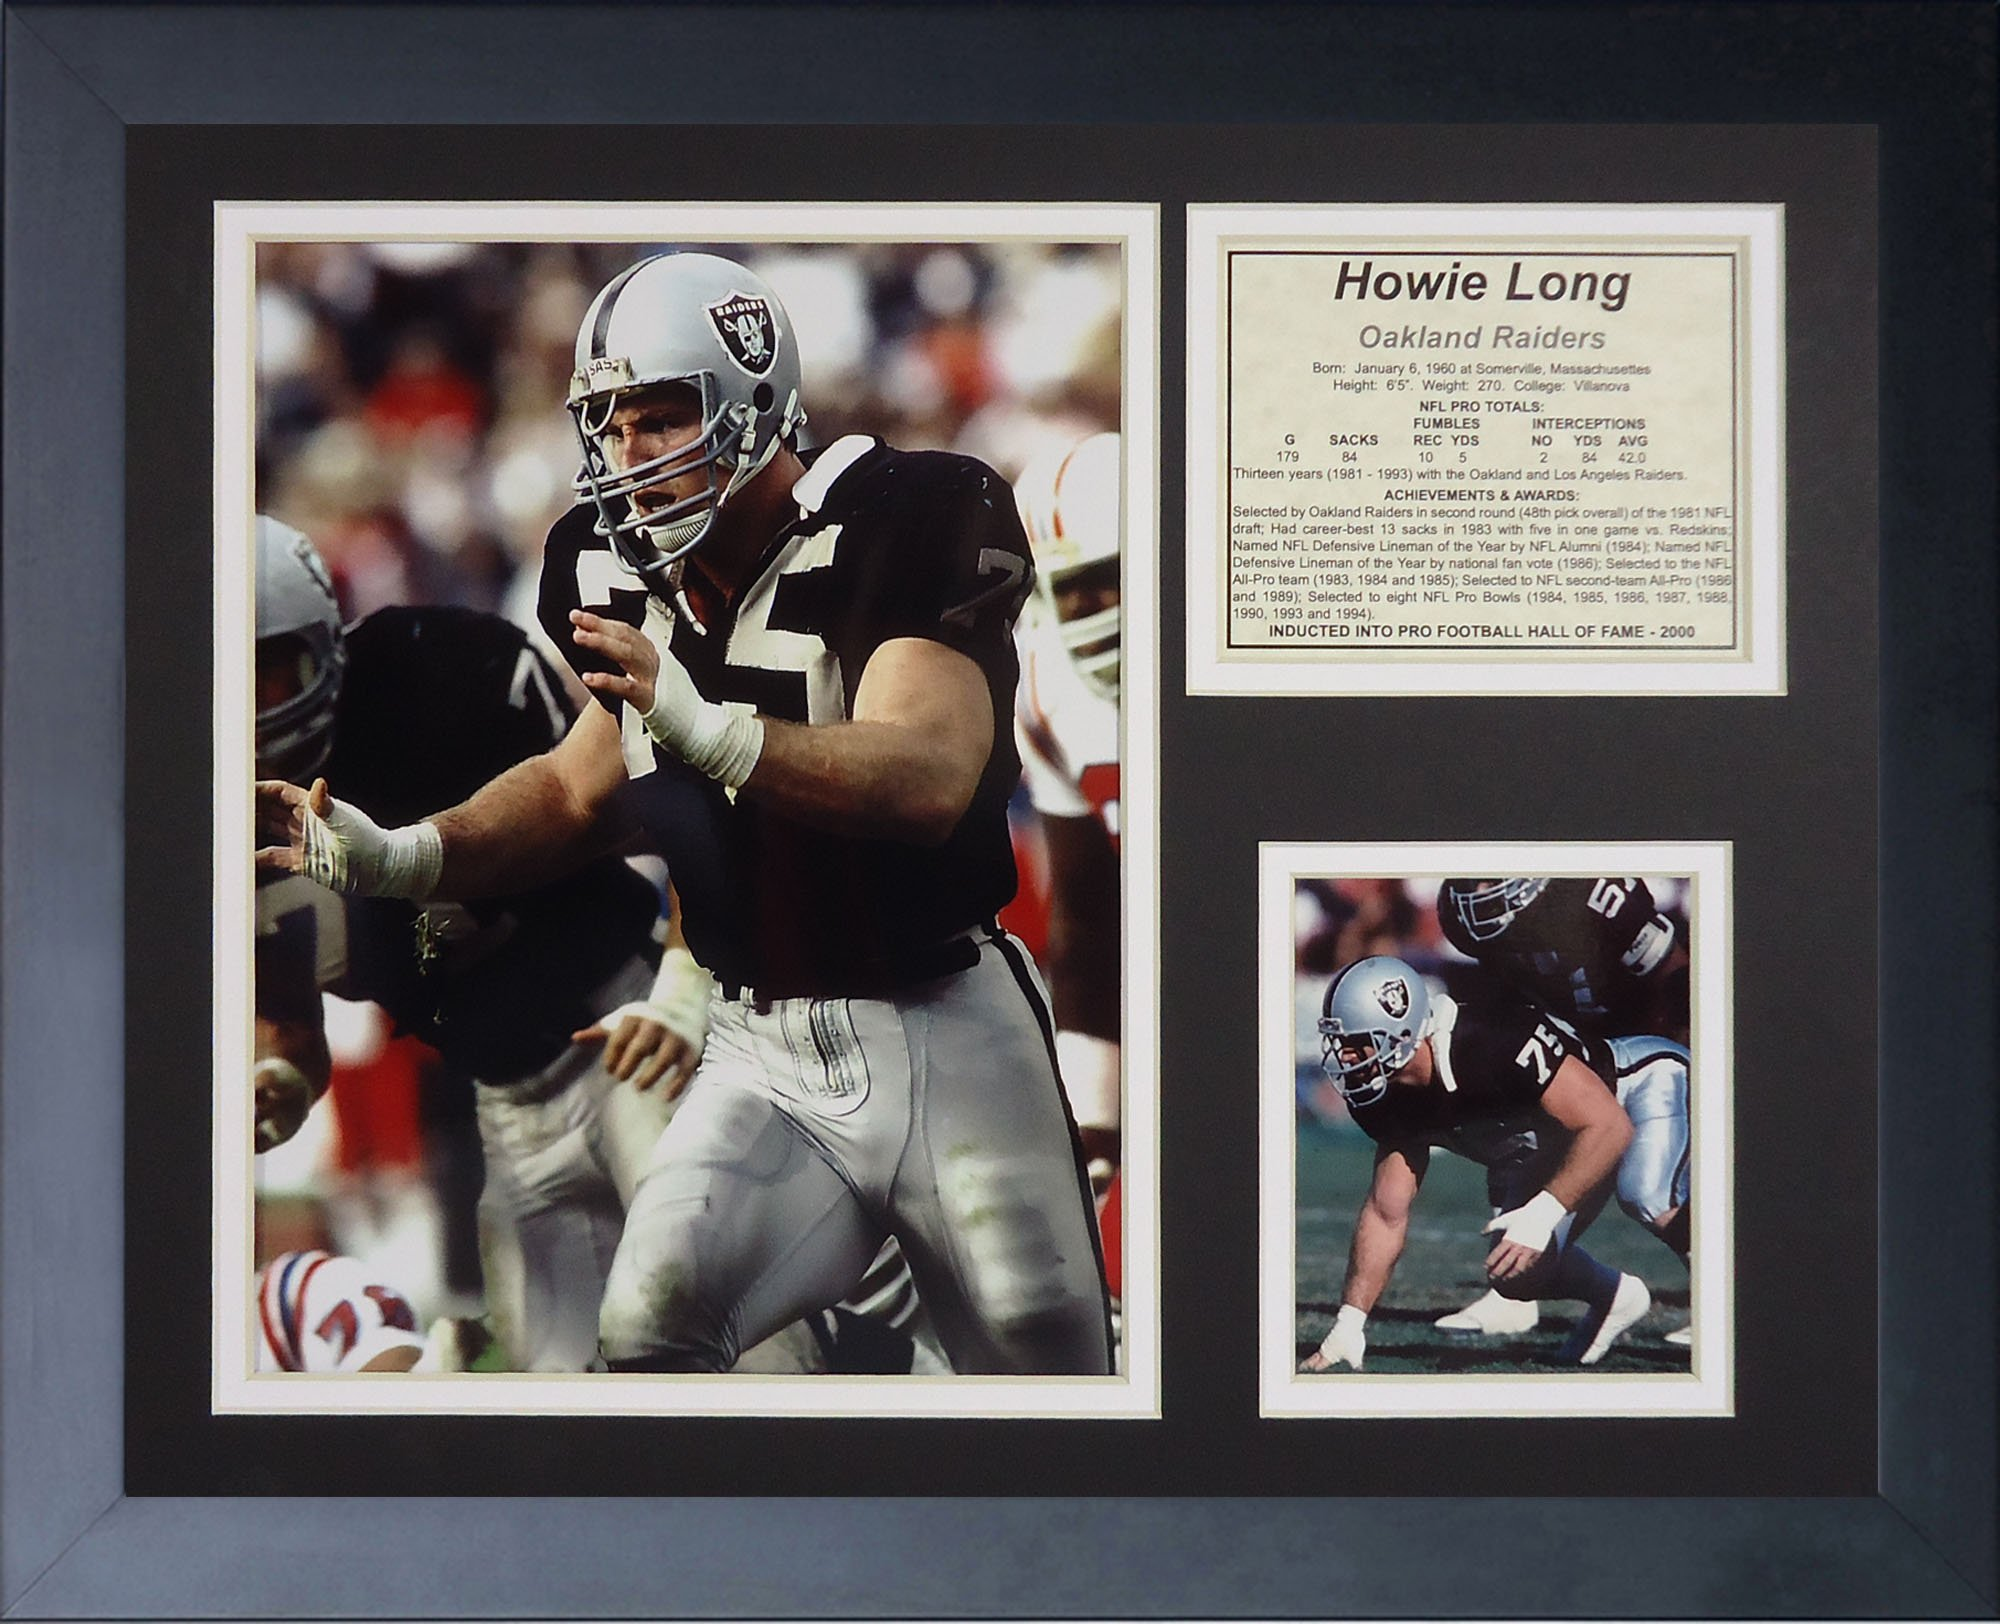 Legends Never Die ''Howie Long Home Framed Photo Collage, 11 x 14-Inch by Legends Never Die